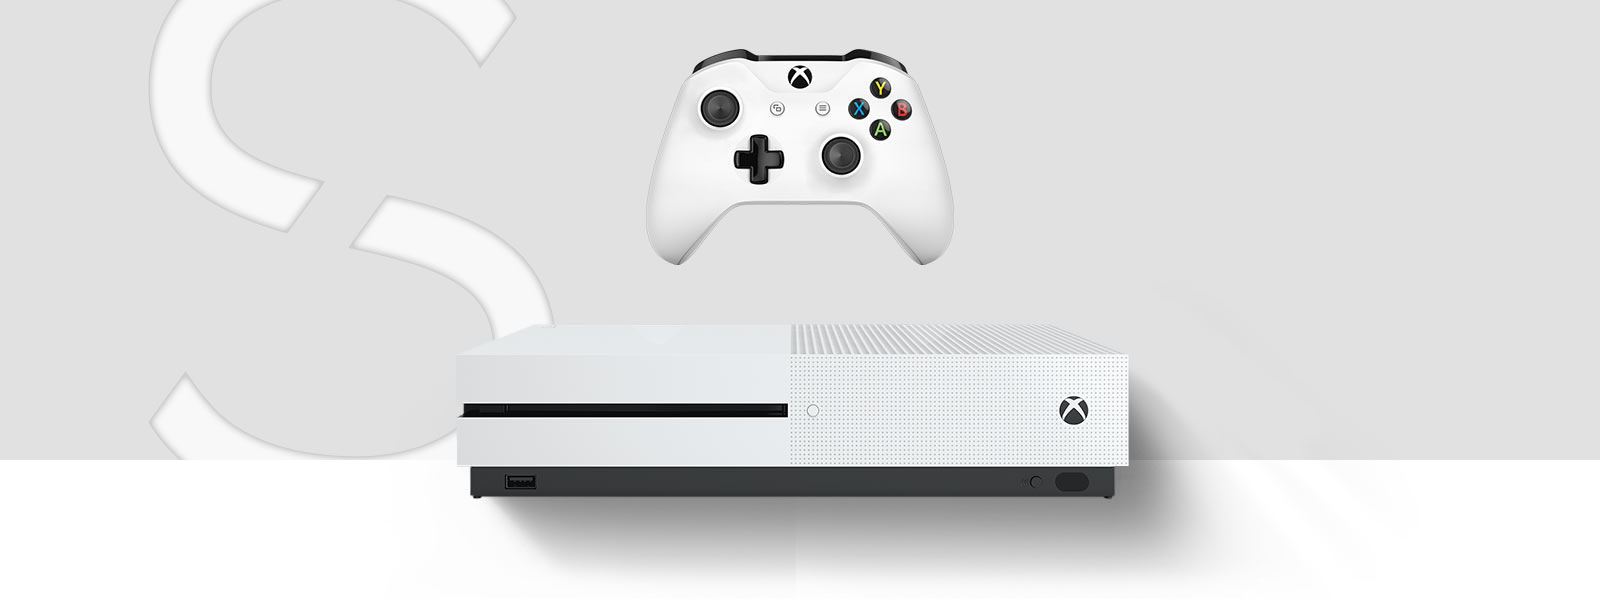 Front view of the Xbox One S console in front of a large stylized letter S